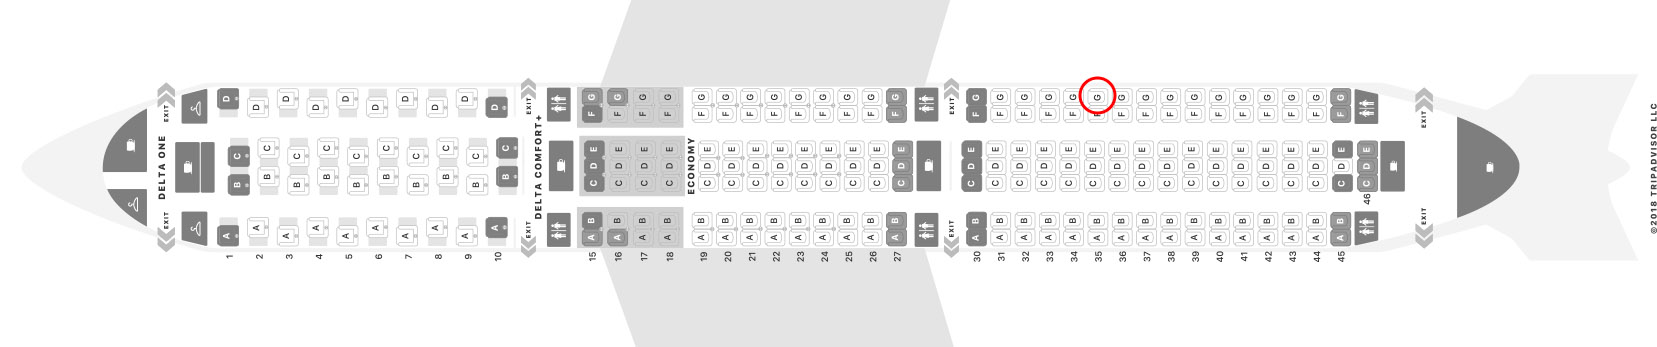 Delta 767-400 seat map